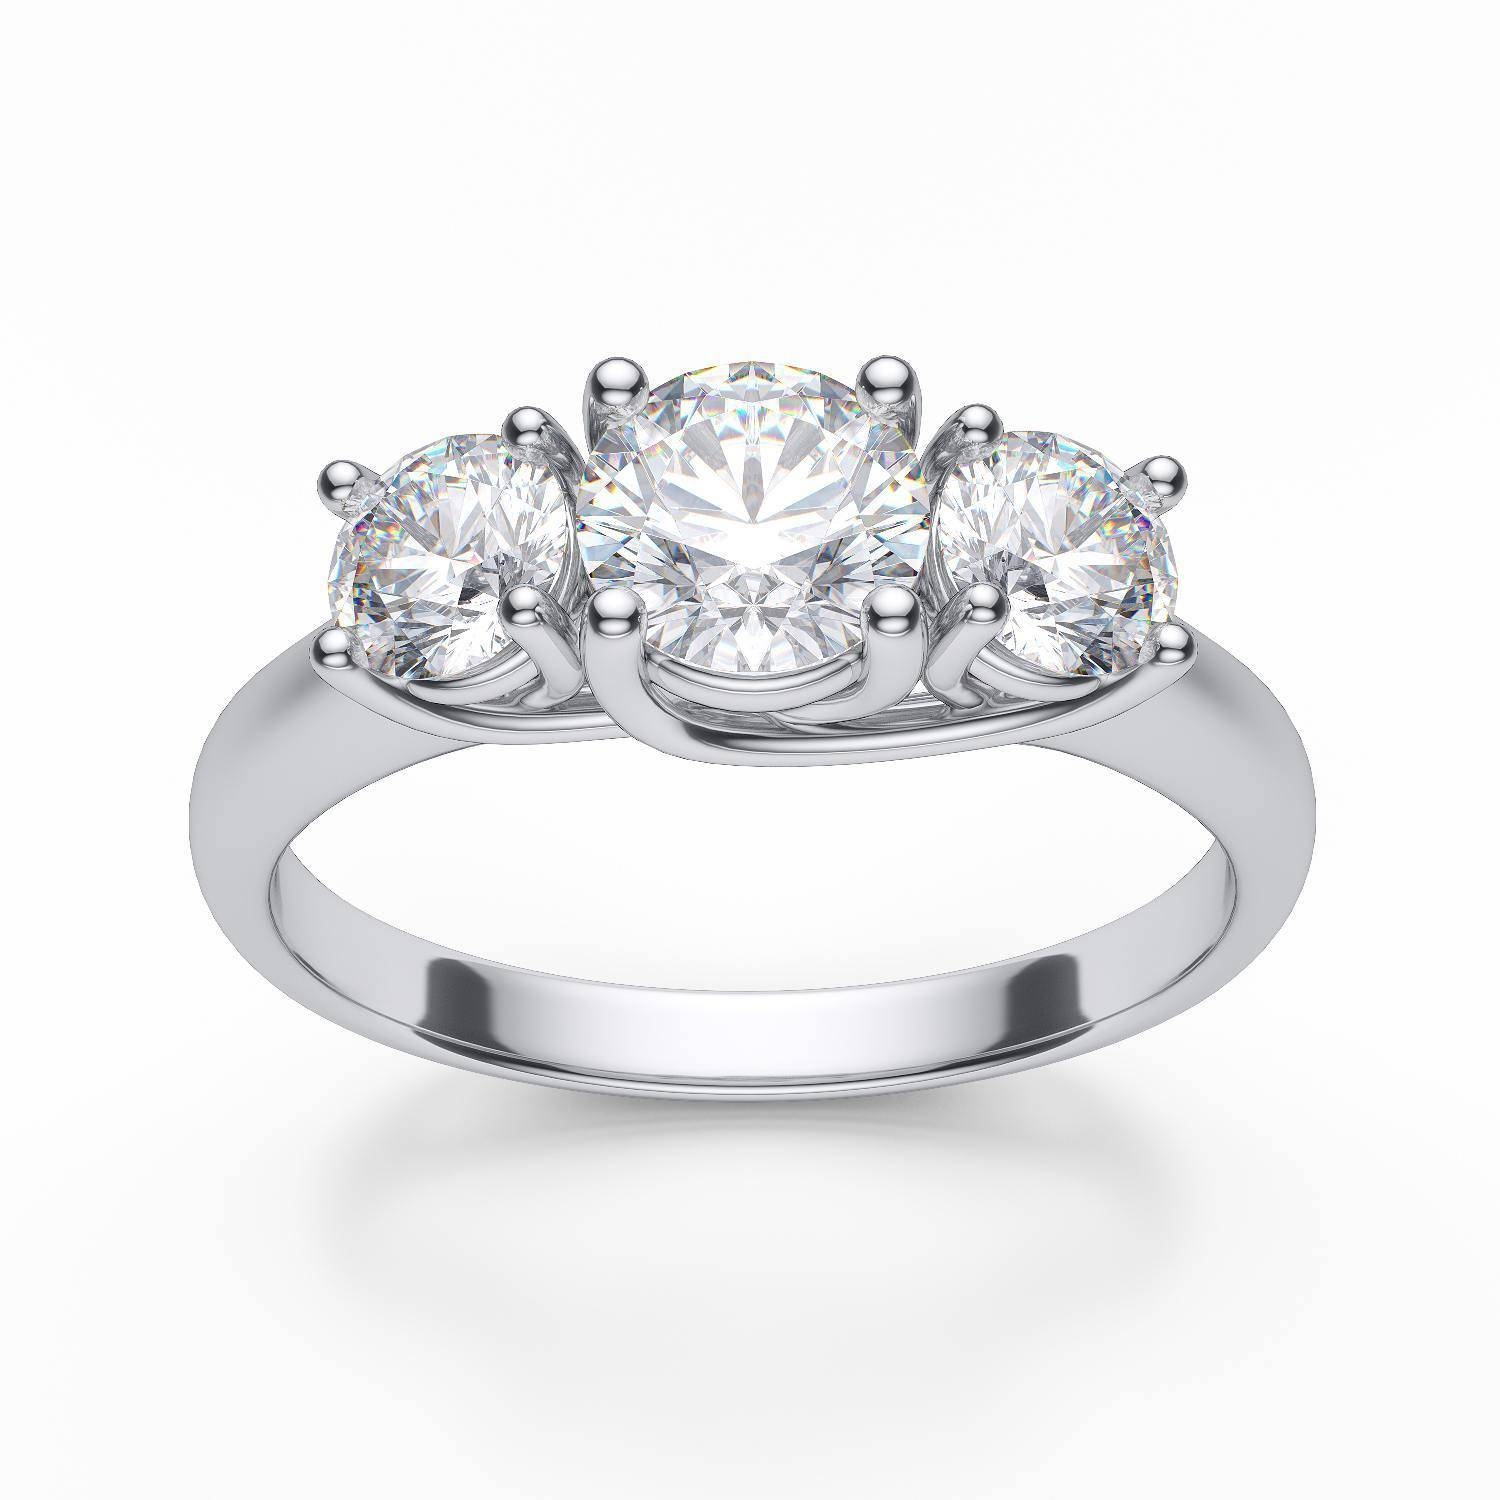 3 Stone Diamond Anniversary Rings | Wedding, Promise, Diamond Throughout Most Recent 3 Stone Diamond Anniversary Rings (View 2 of 25)